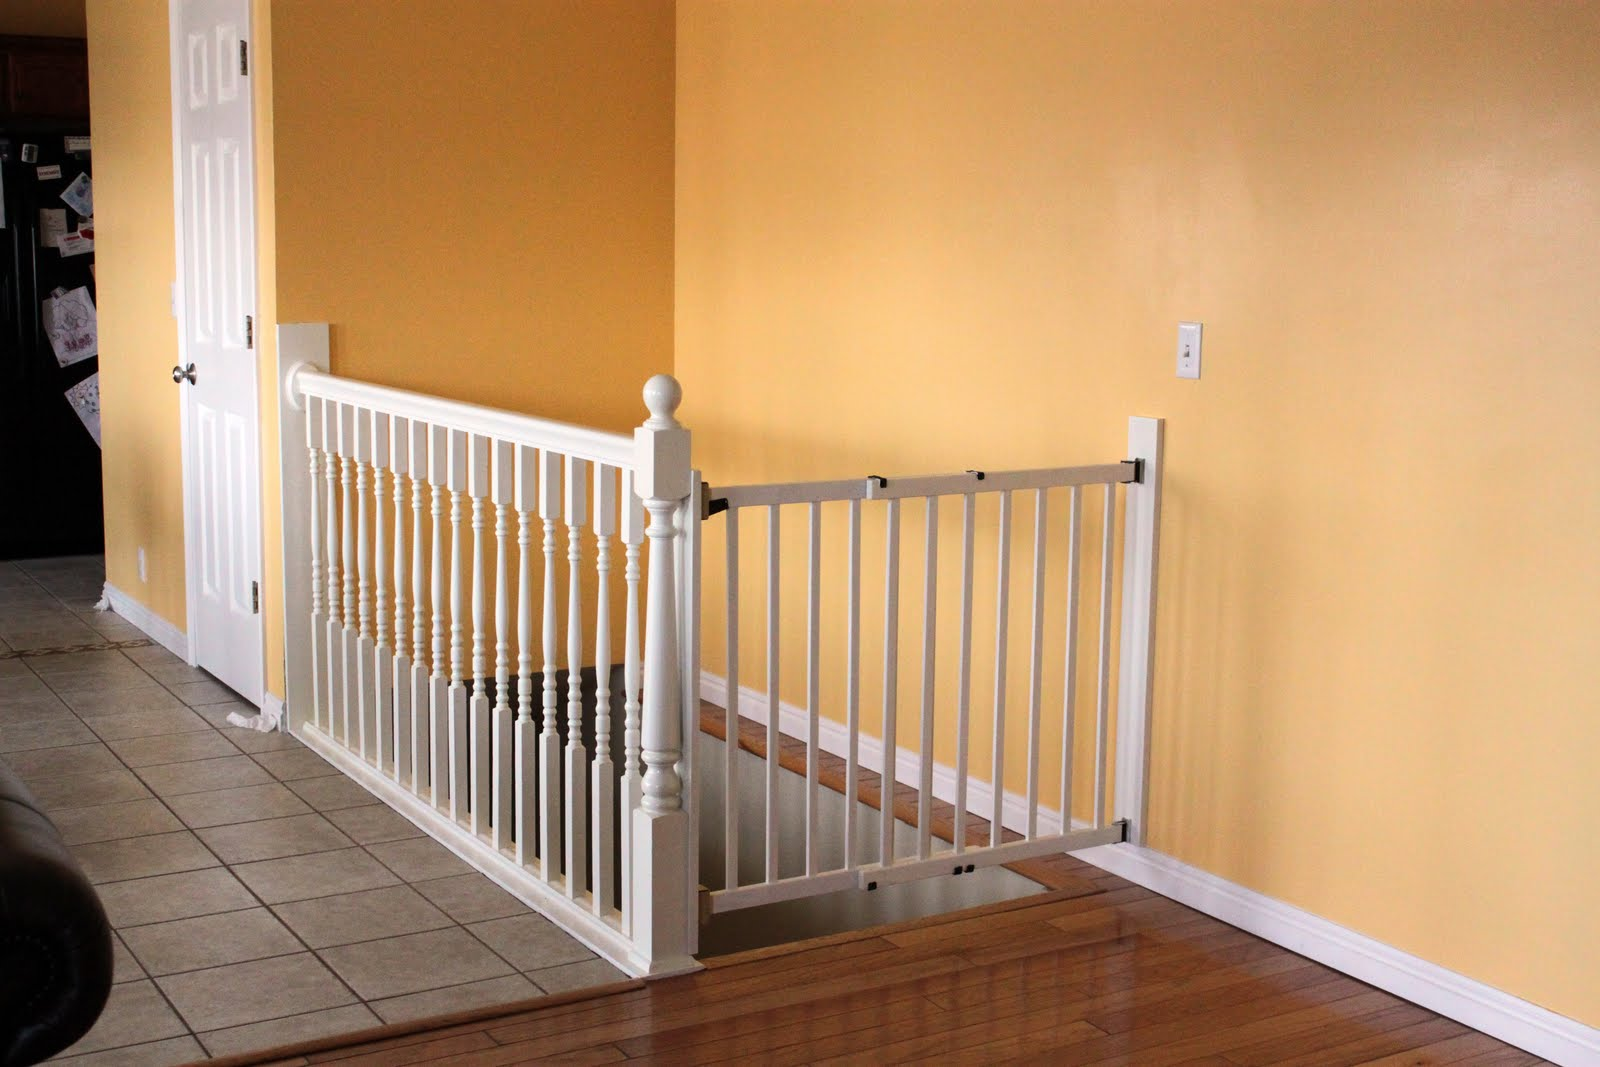 How To Attach Banister To Wall